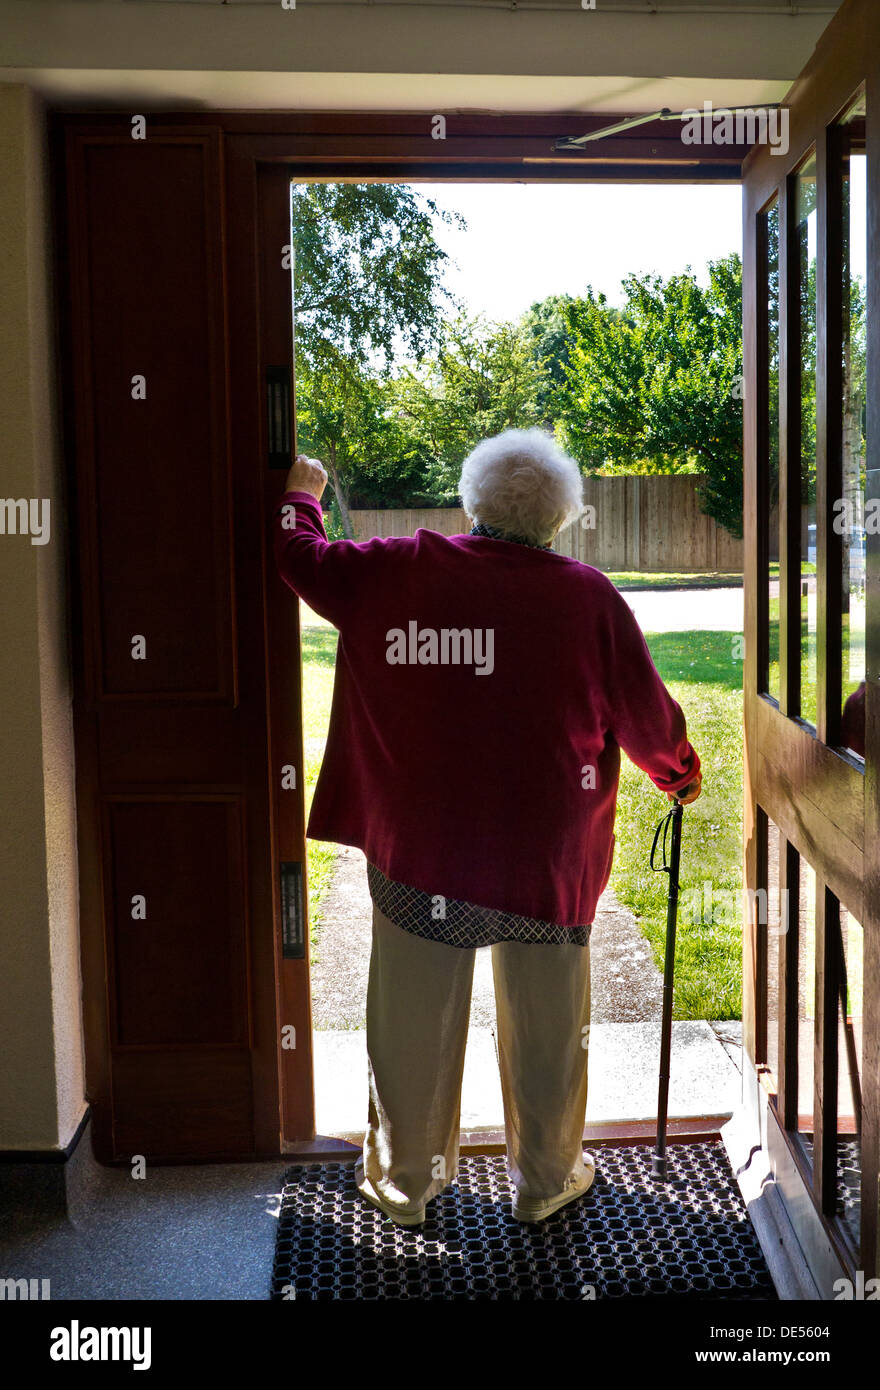 ELDERLY FRONT DOOR WAITING UNSURE Pensive elderly senior old age lady standing alone with walking stick pauses at her open front door - Stock Image